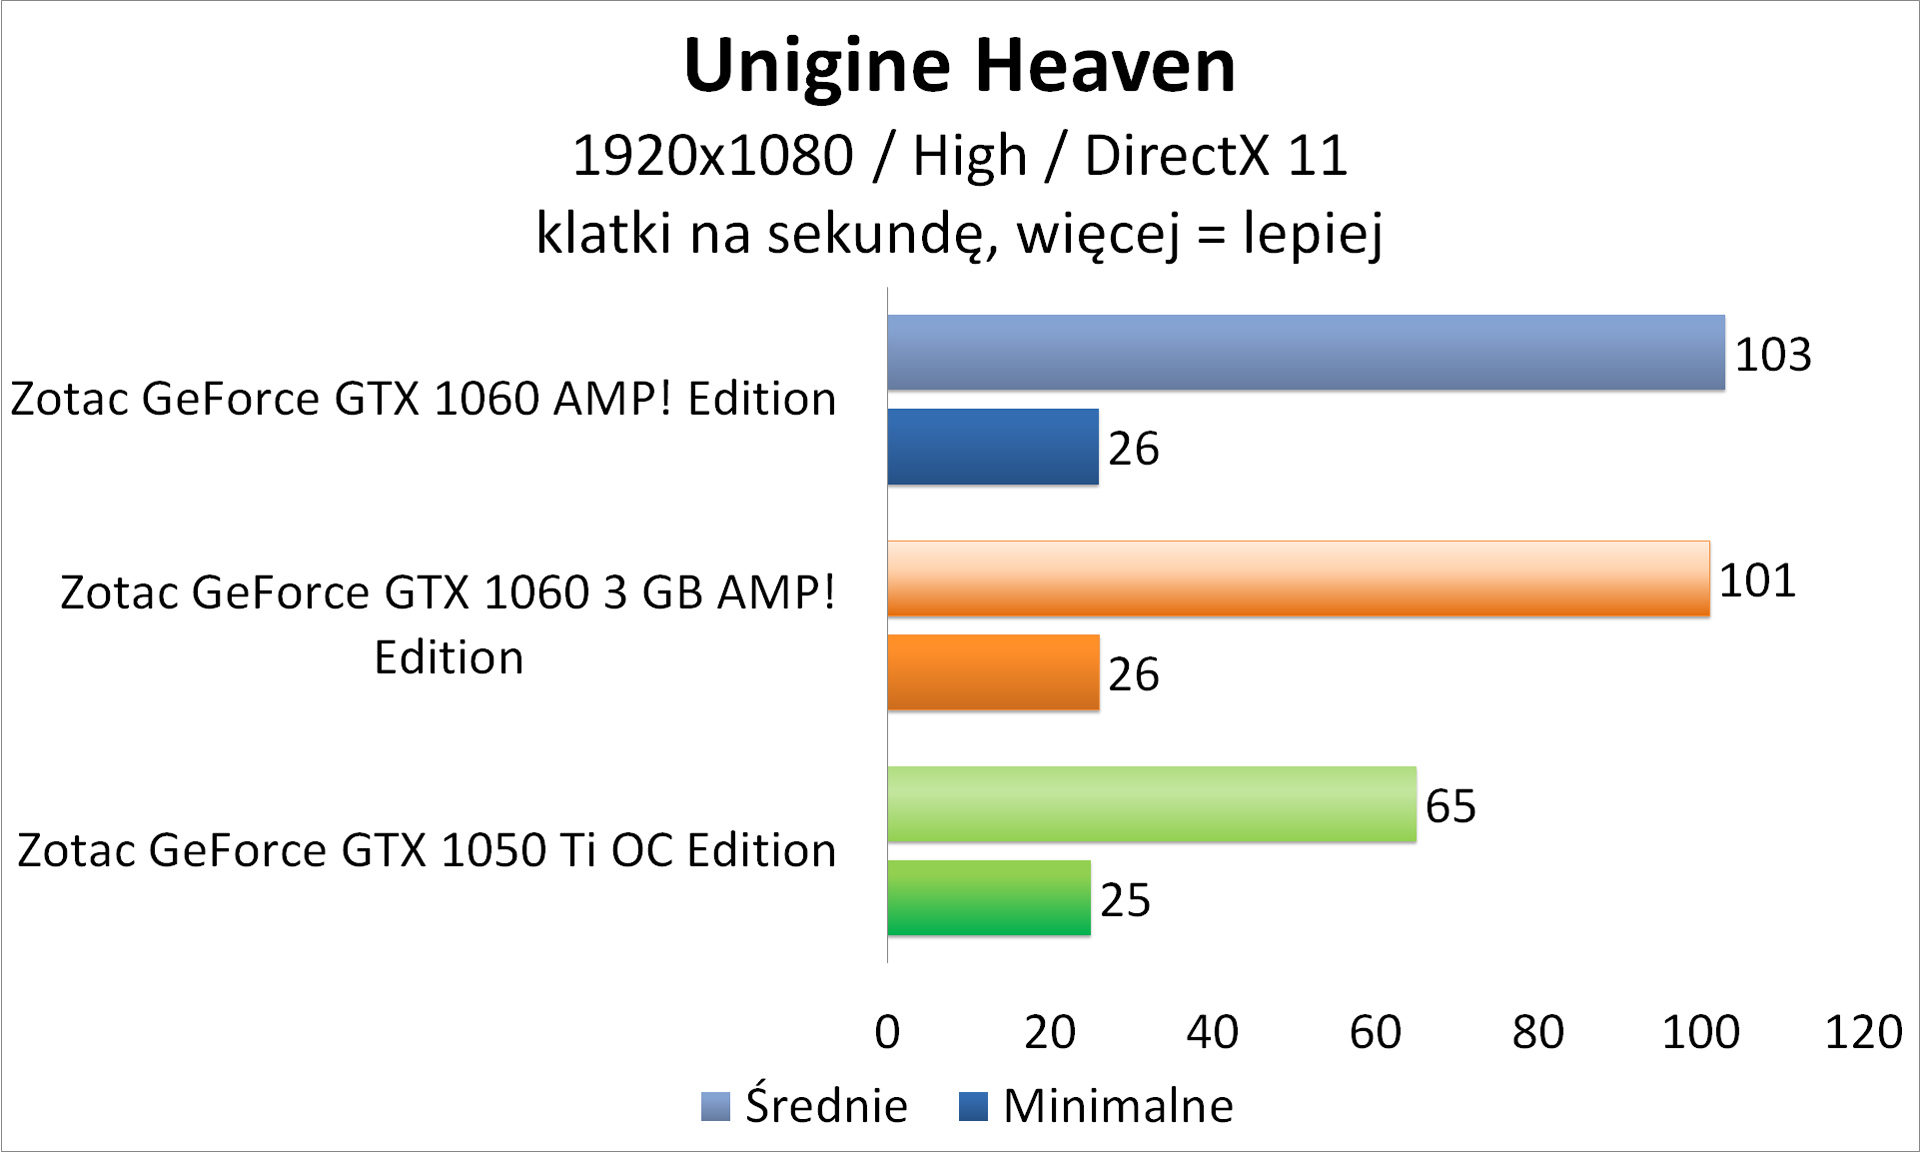 Zotac GeForce GTX 1050 Ti OC Edition - Unigine Heaven